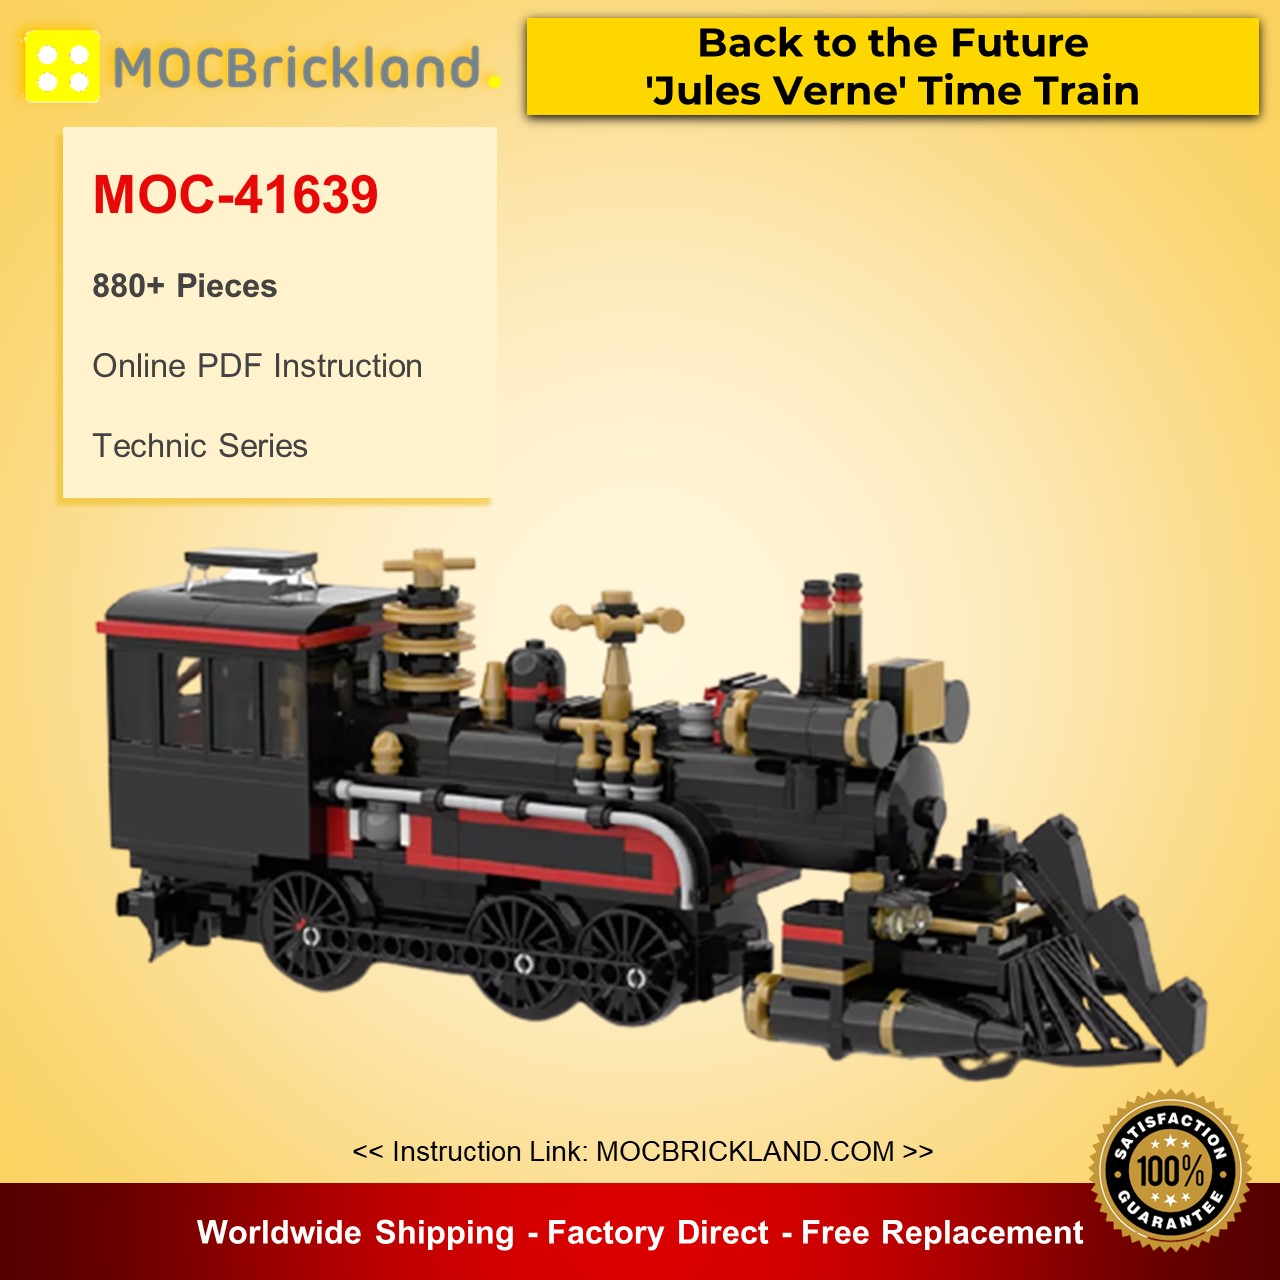 MOC-41639 Back to the Future 'Jules Verne' Time Train Technic Designed By mkibs With 880 Pieces